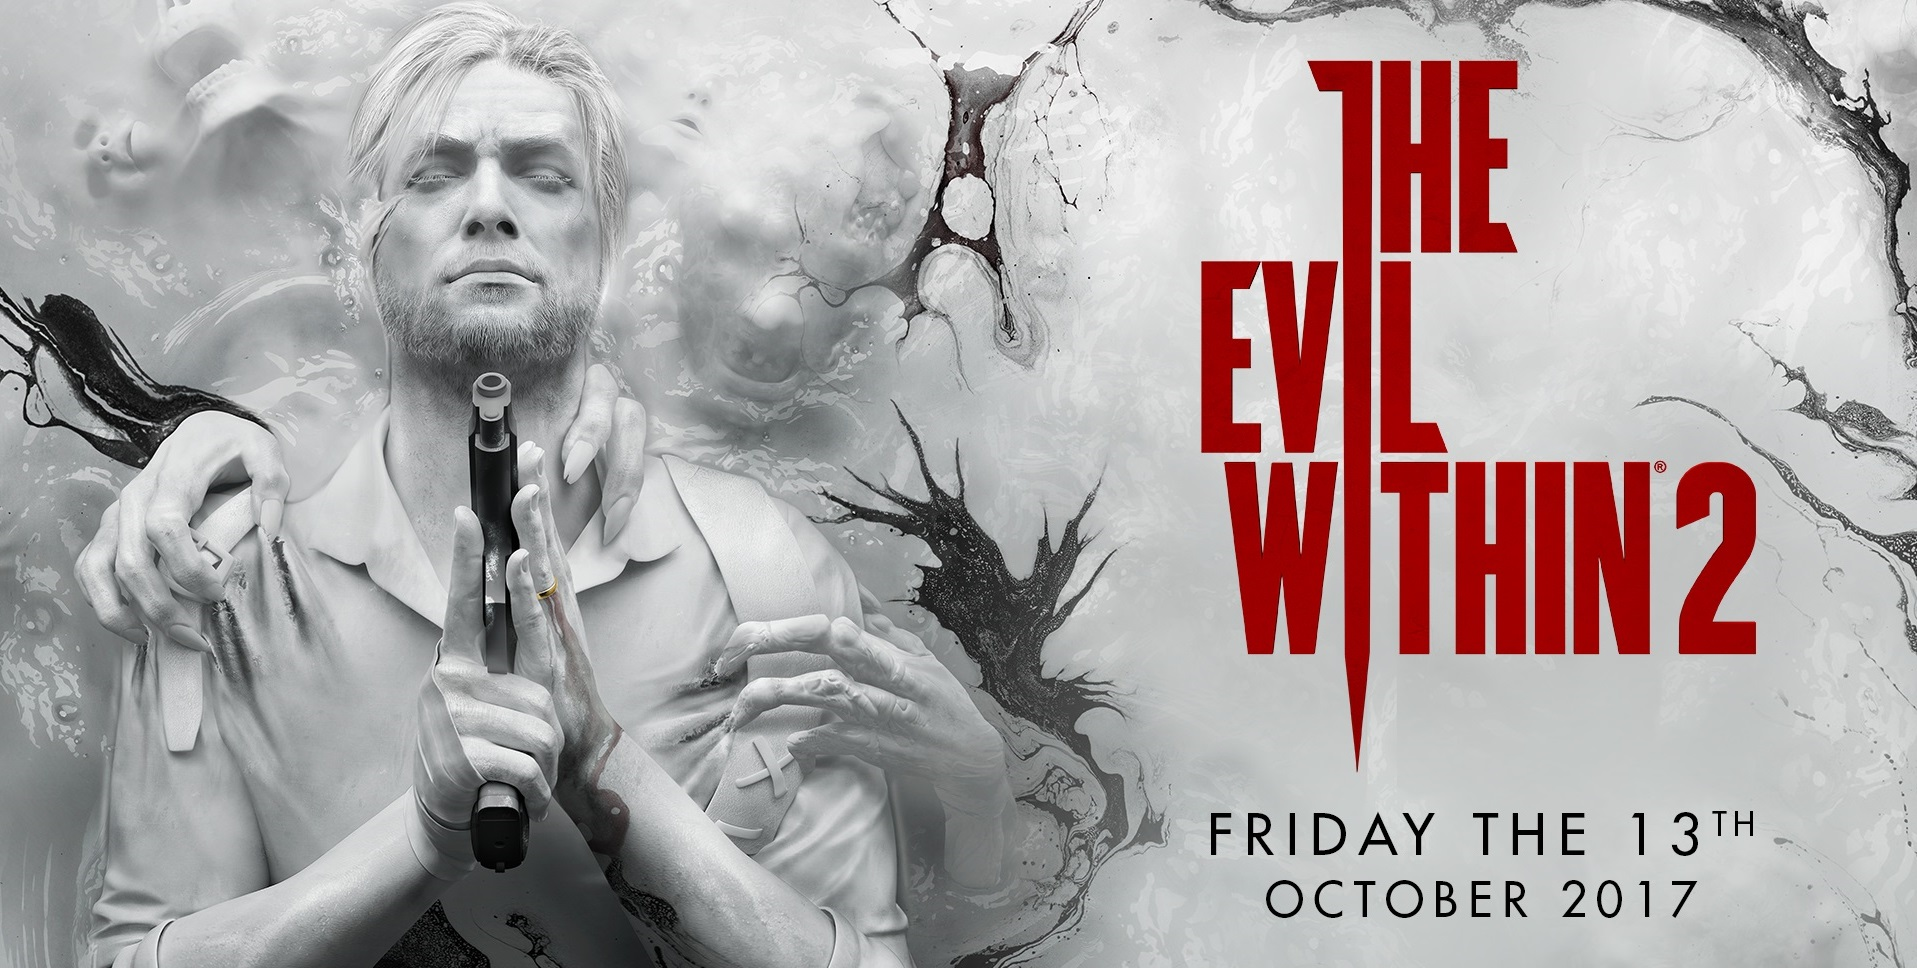 Co víme o - The Evil Within 2 13548